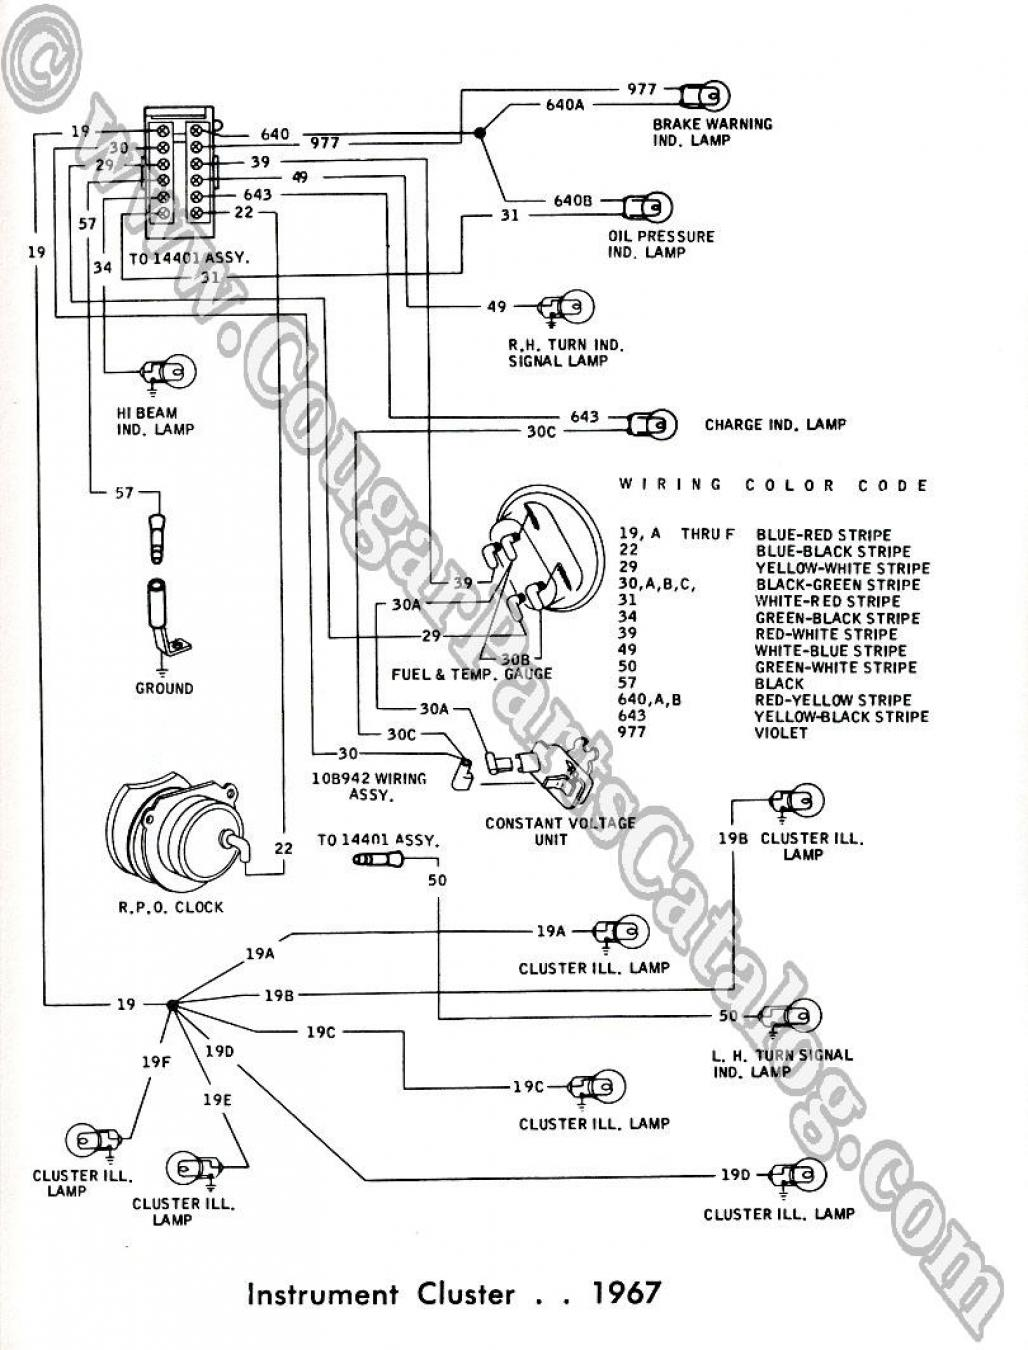 2000 Mercury Cougar Wiring Diagram